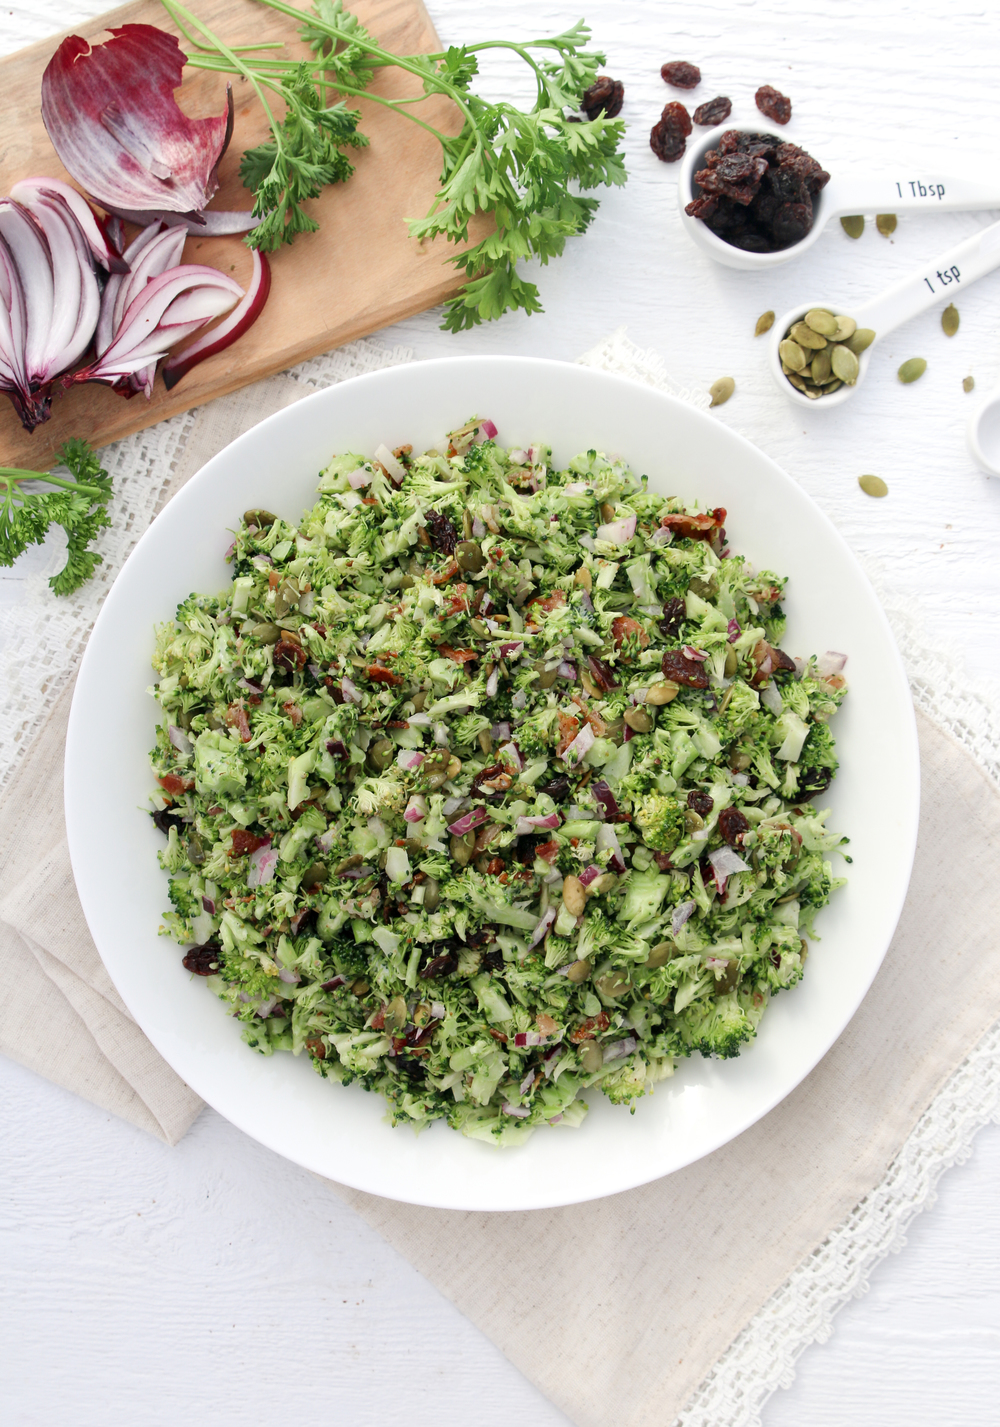 BROCCOLI SALAD WITH PUMPKIN SEEDS, RAISINS AND BACON